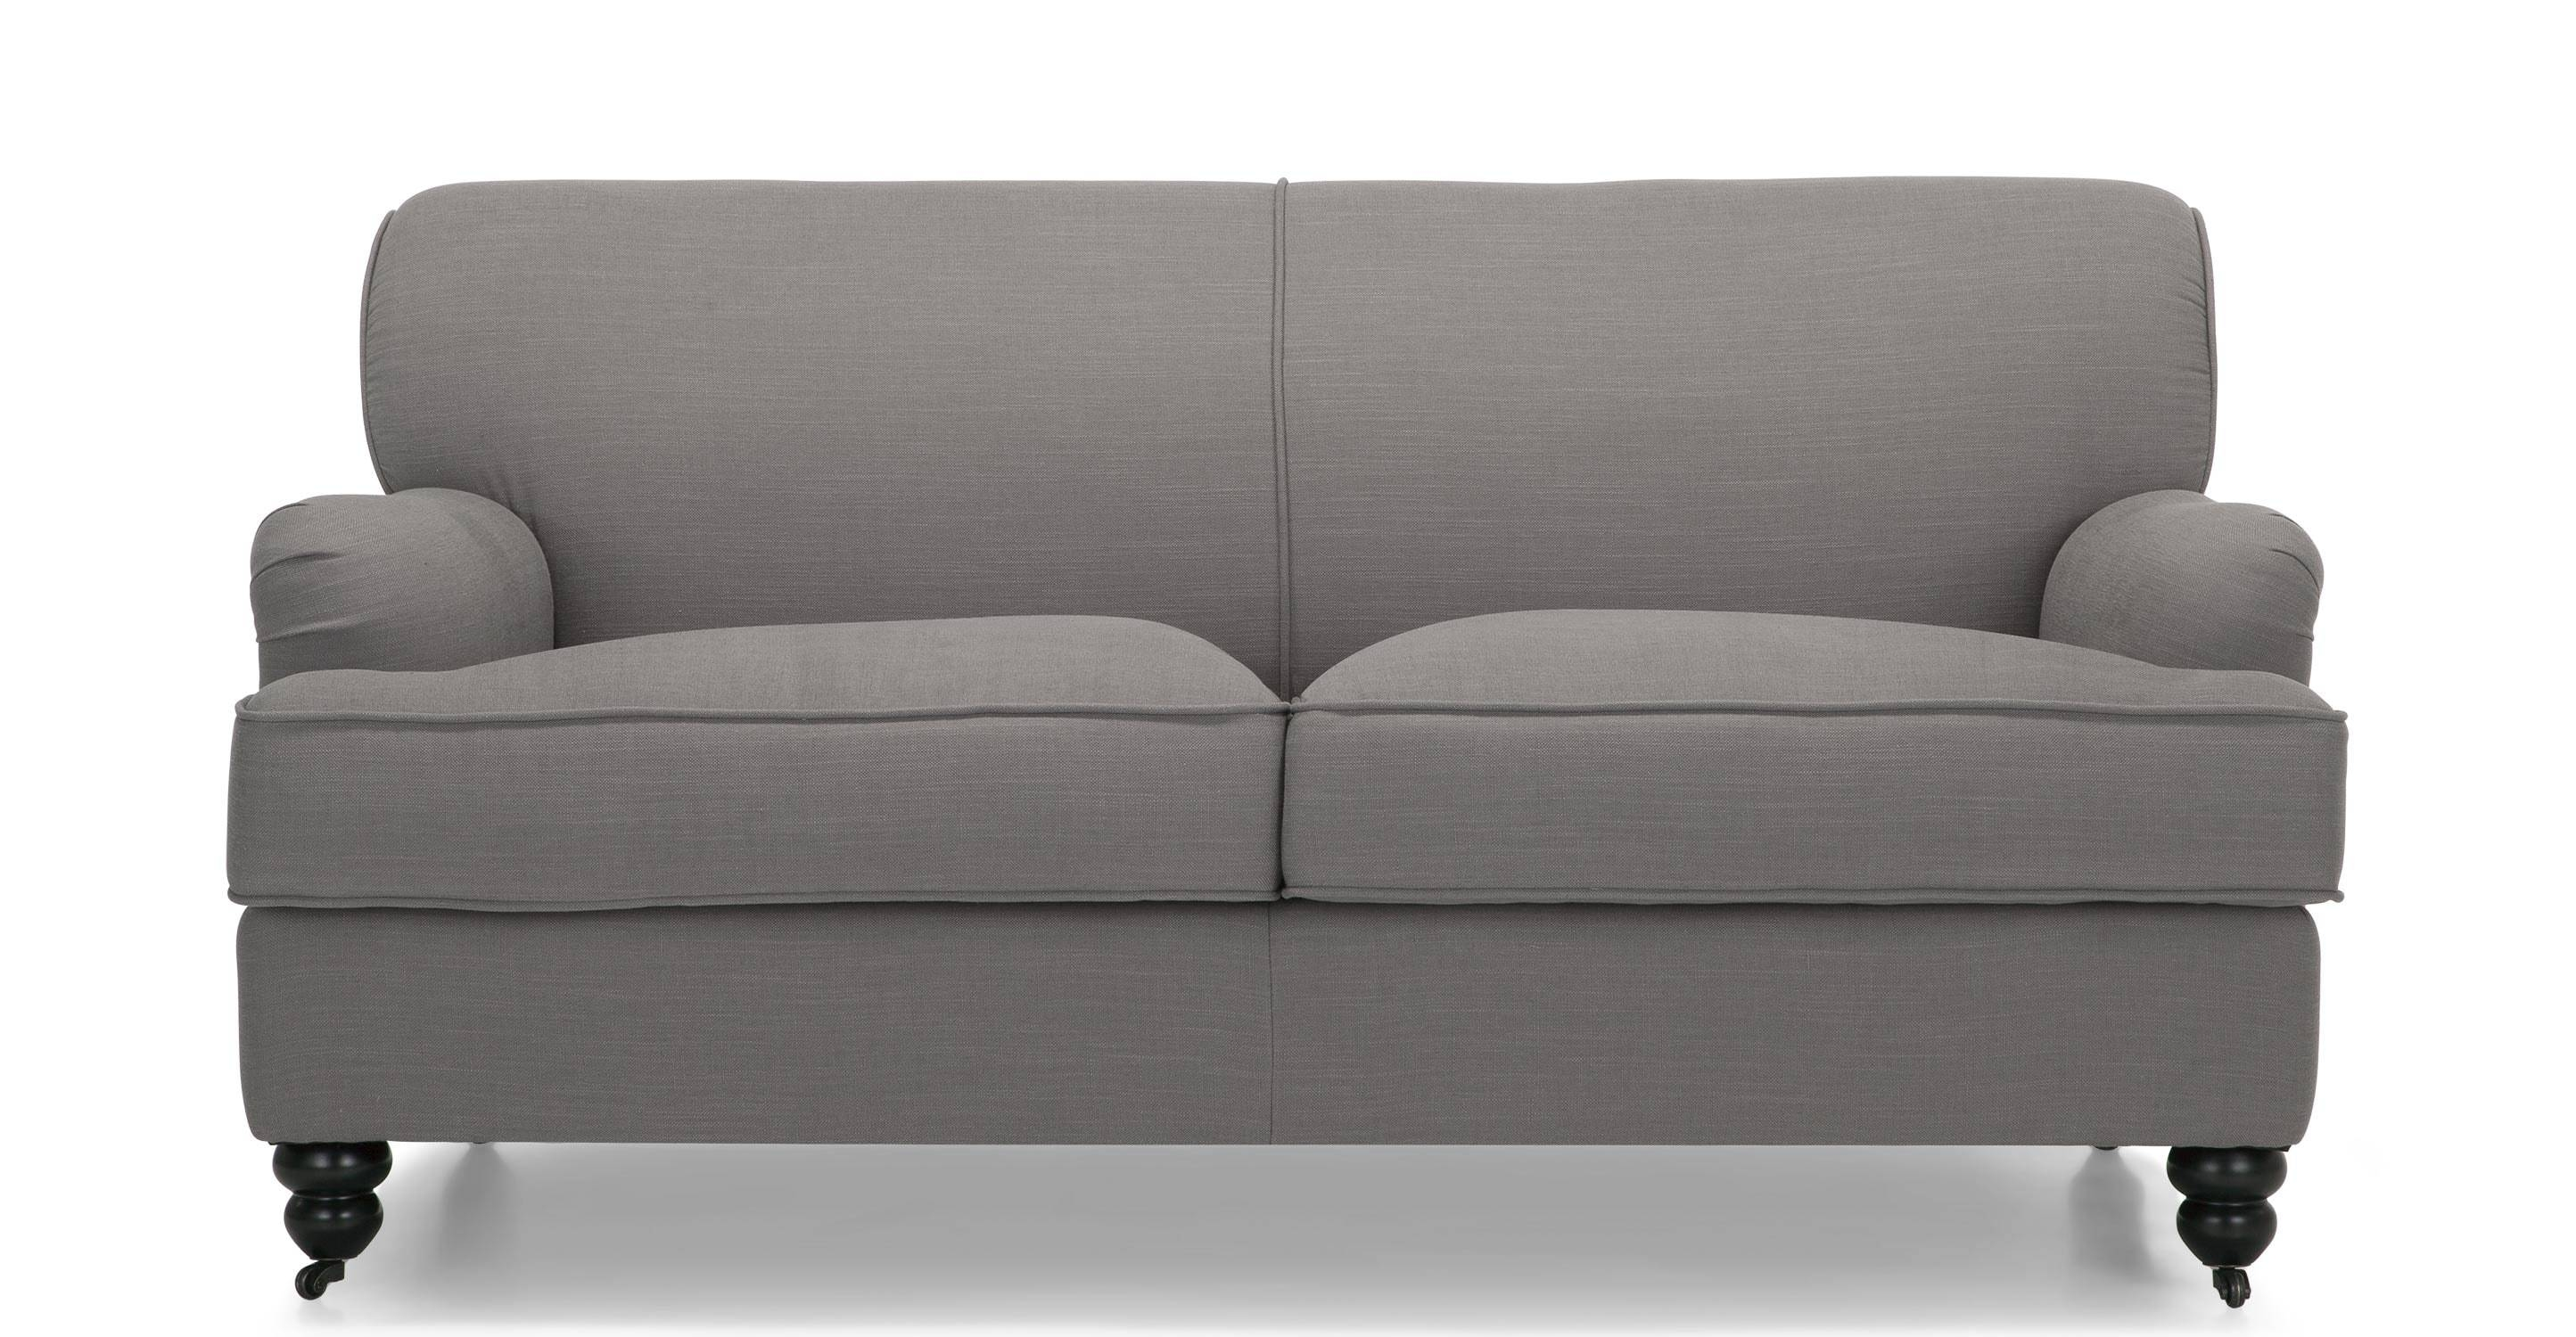 Sofas Center : Seater Sofas For Small Spacessmallsmall Heals2 within Small 2 Seater Sofas (Image 23 of 30)